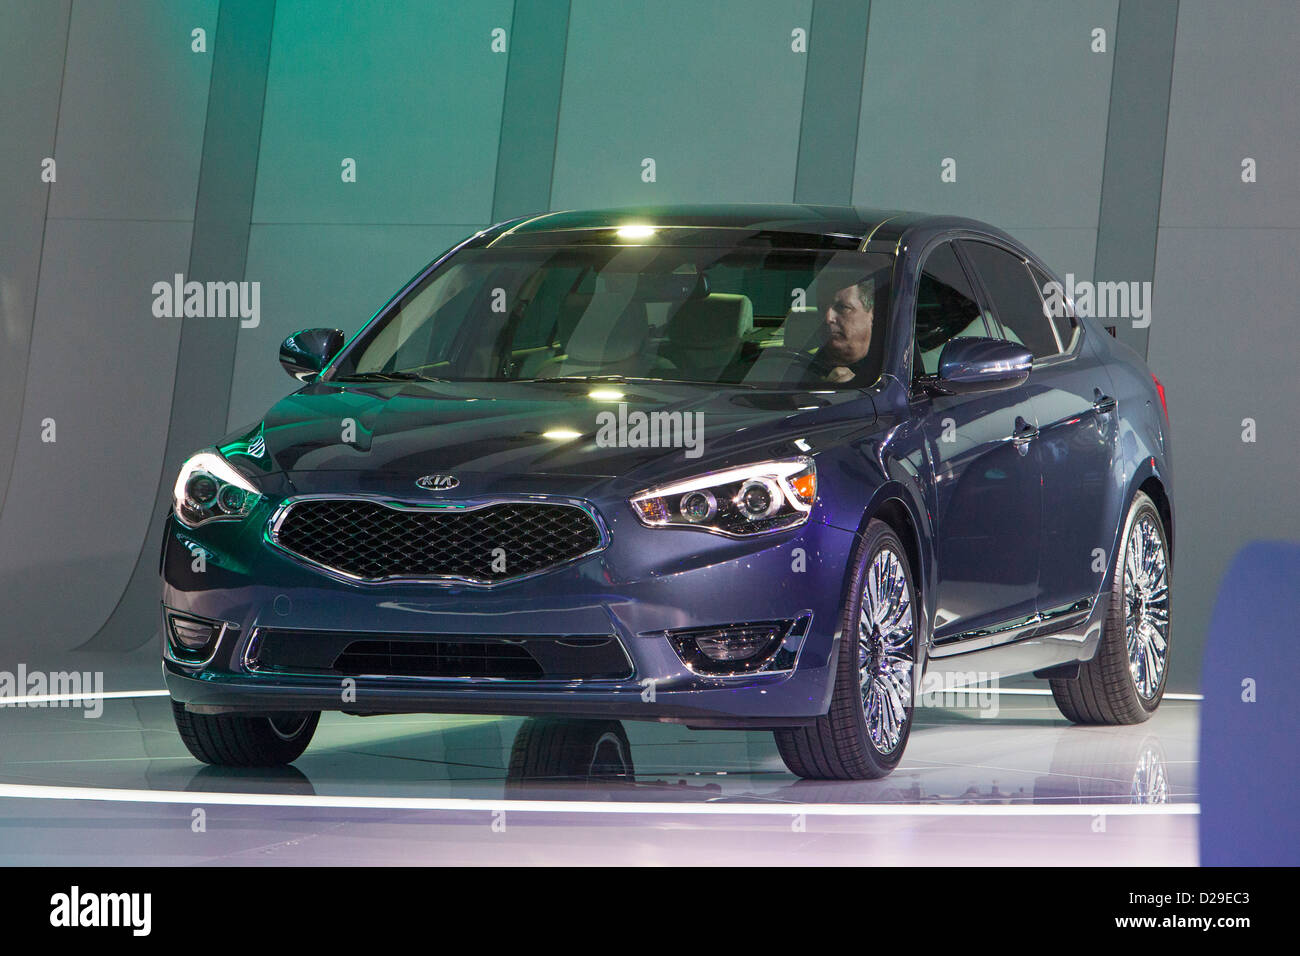 Detroit, Michigan - The Kia Cadenza on display at the North American International Auto Show. Stock Photo